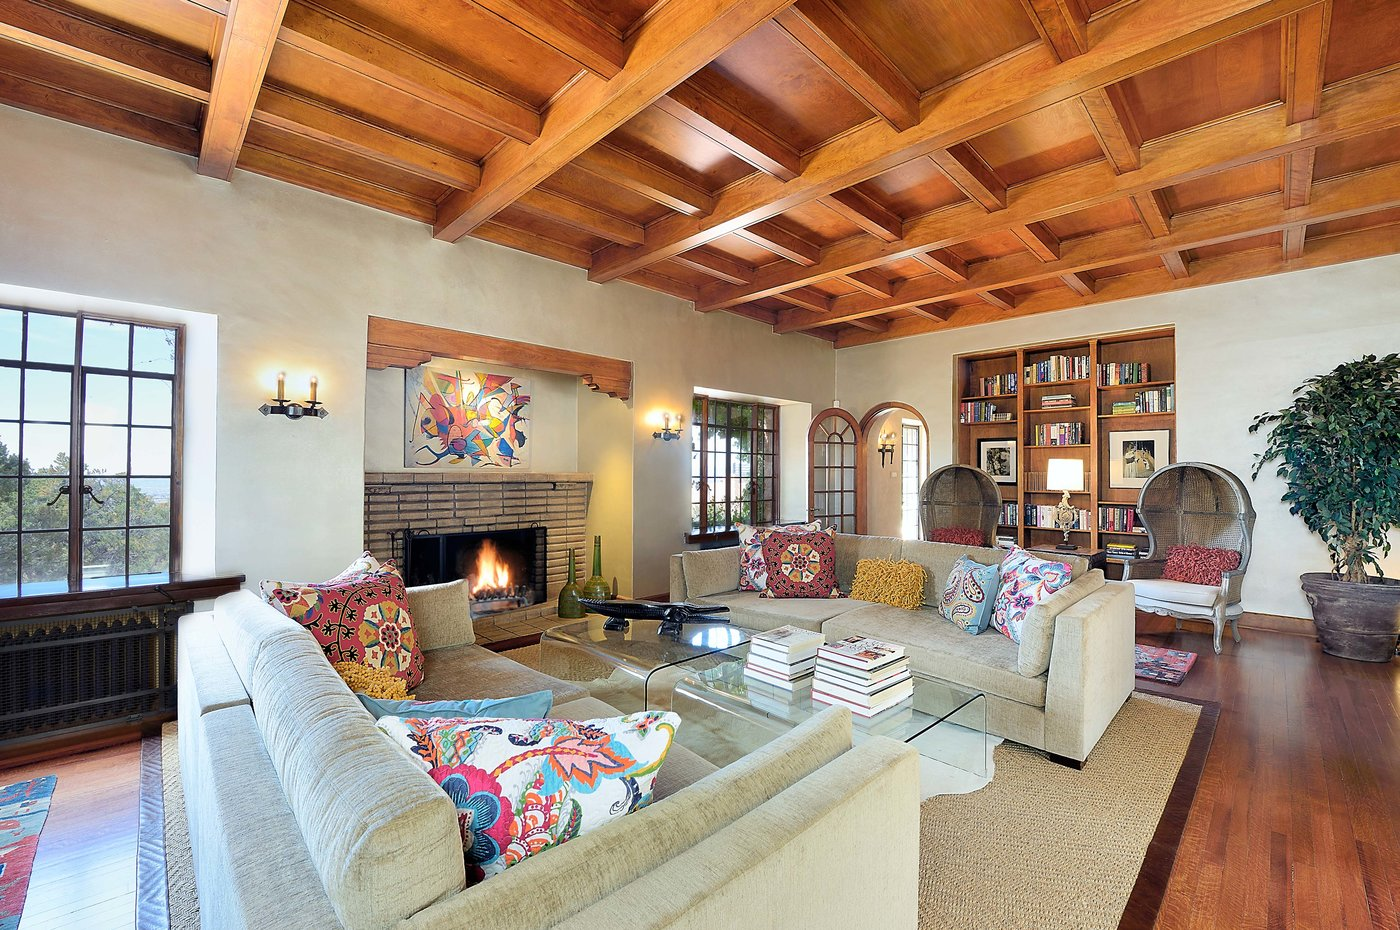 Santa fe real estate sotheby 39 s international realty for Adobe style homes for sale